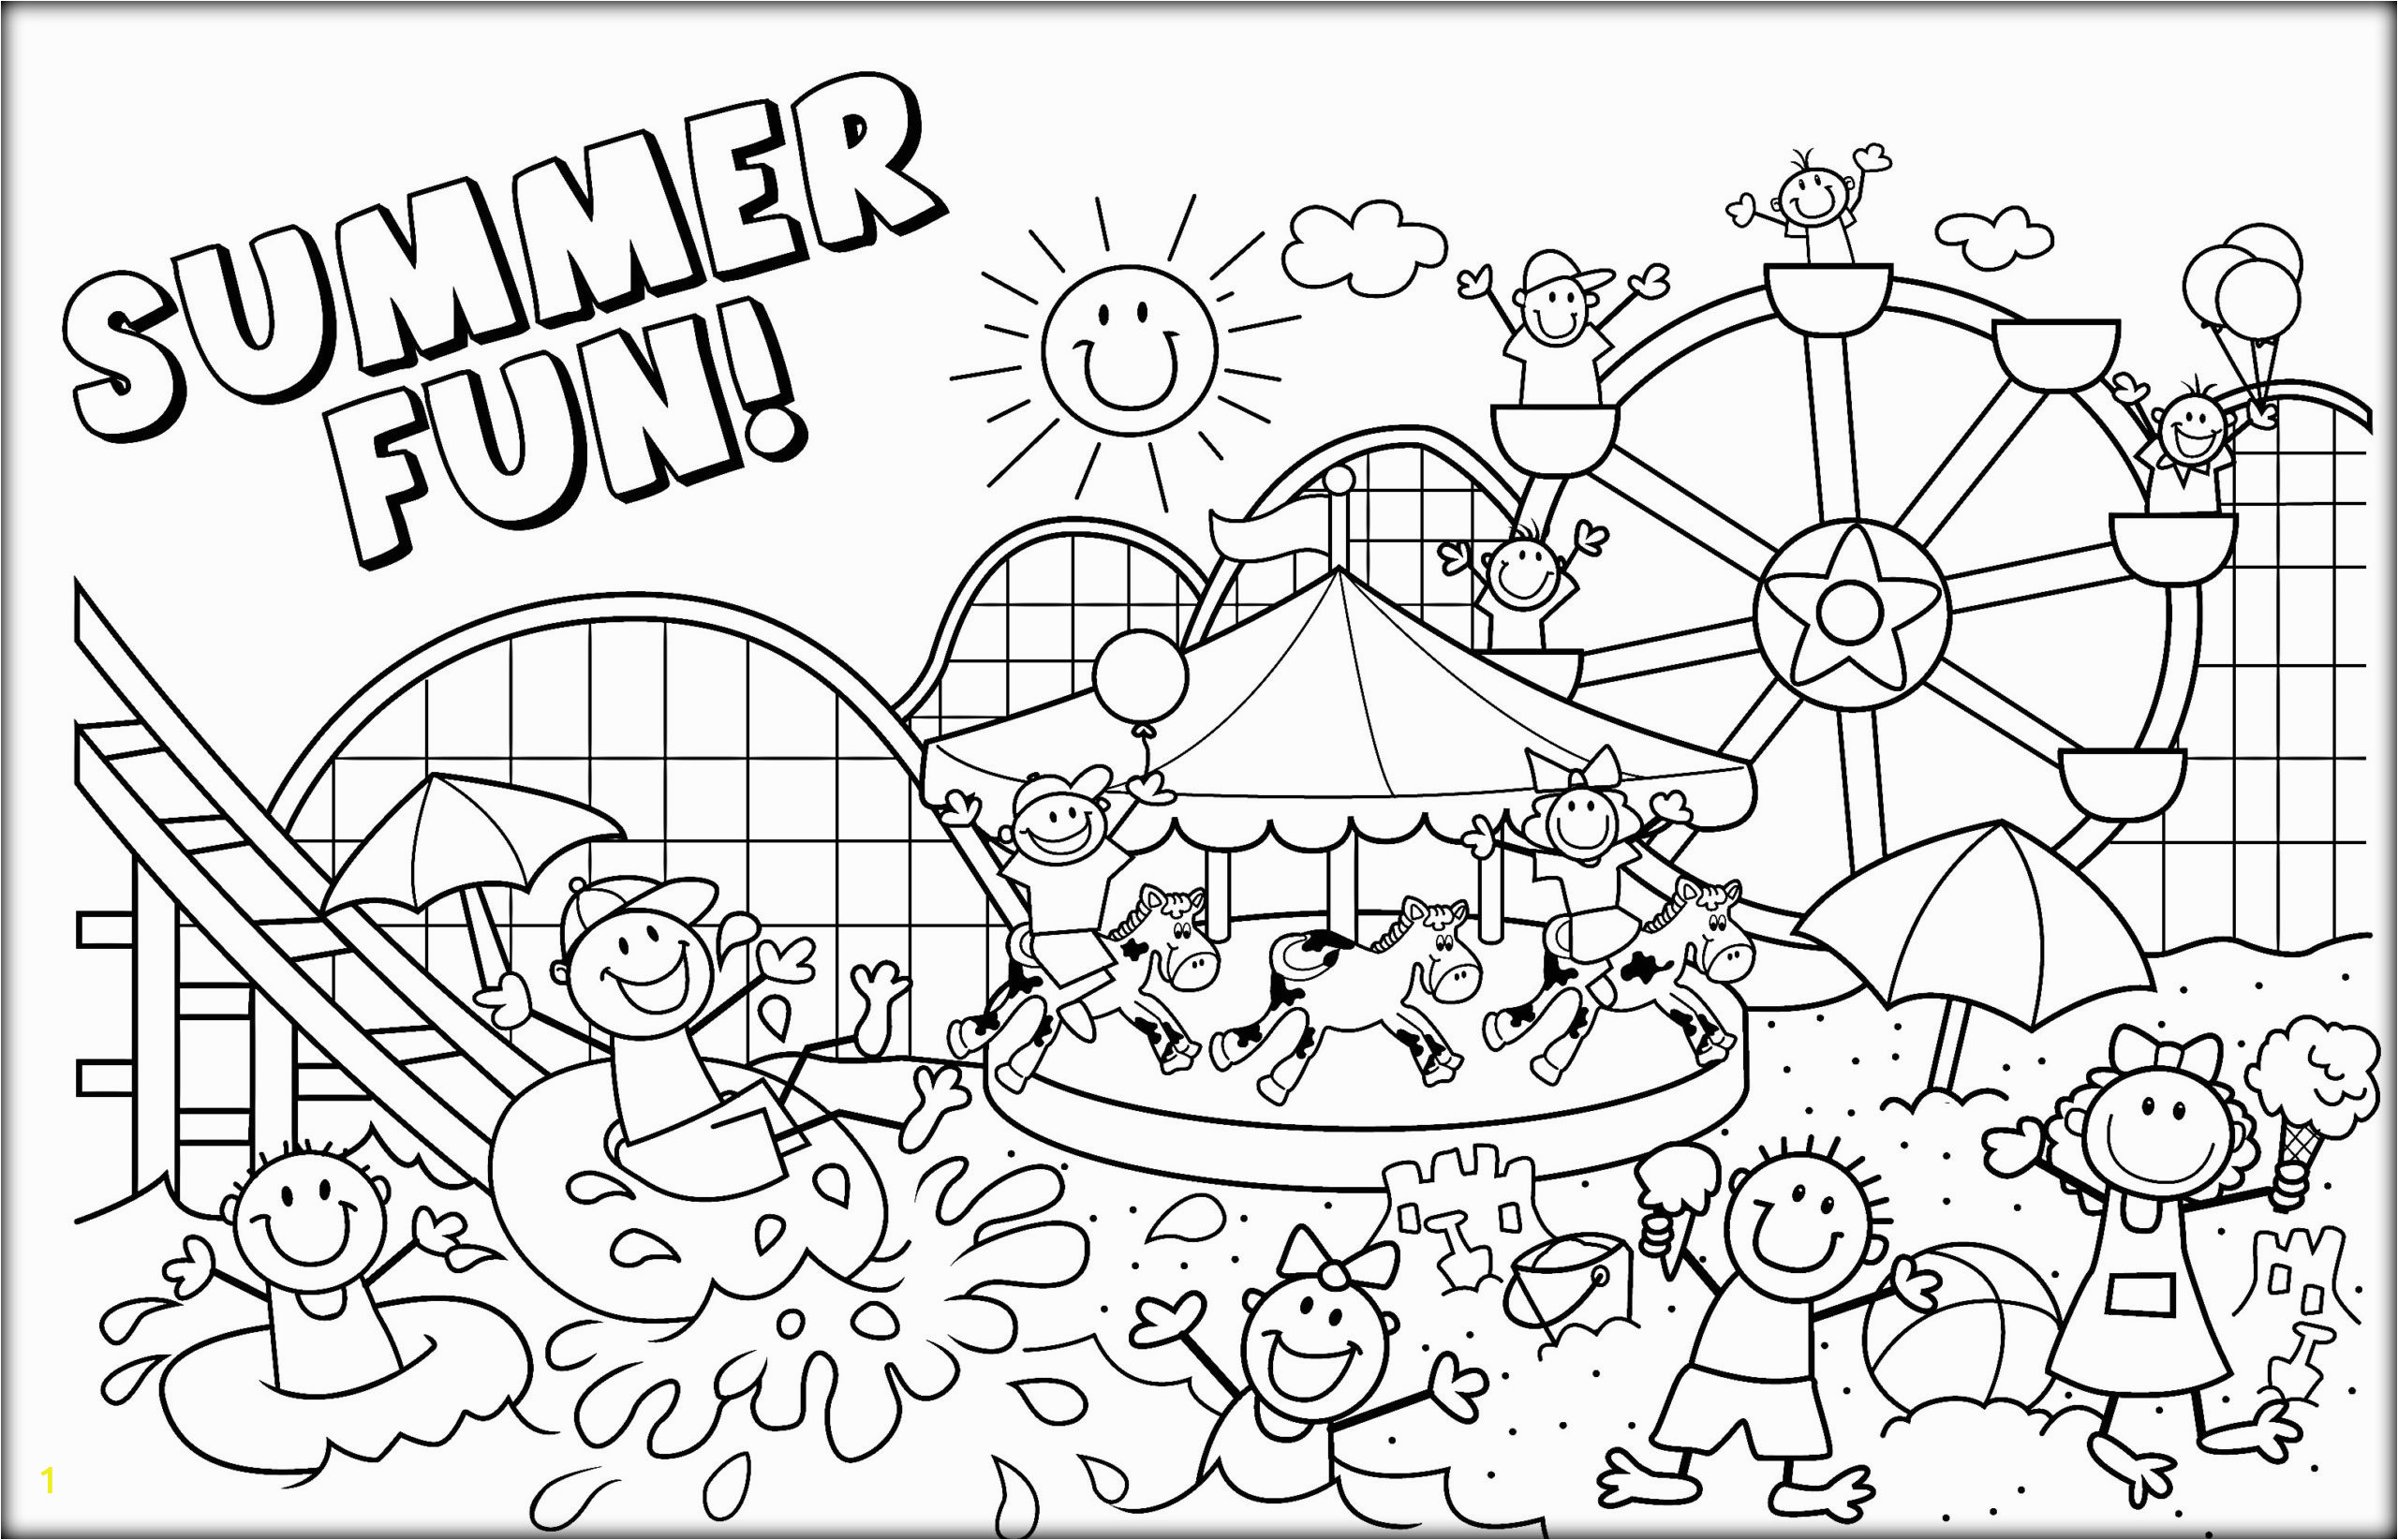 colors adult coloring free printables summer printable disney print outs pages color page marvelous summertable proven beach for adults sheets holiday end of vacation